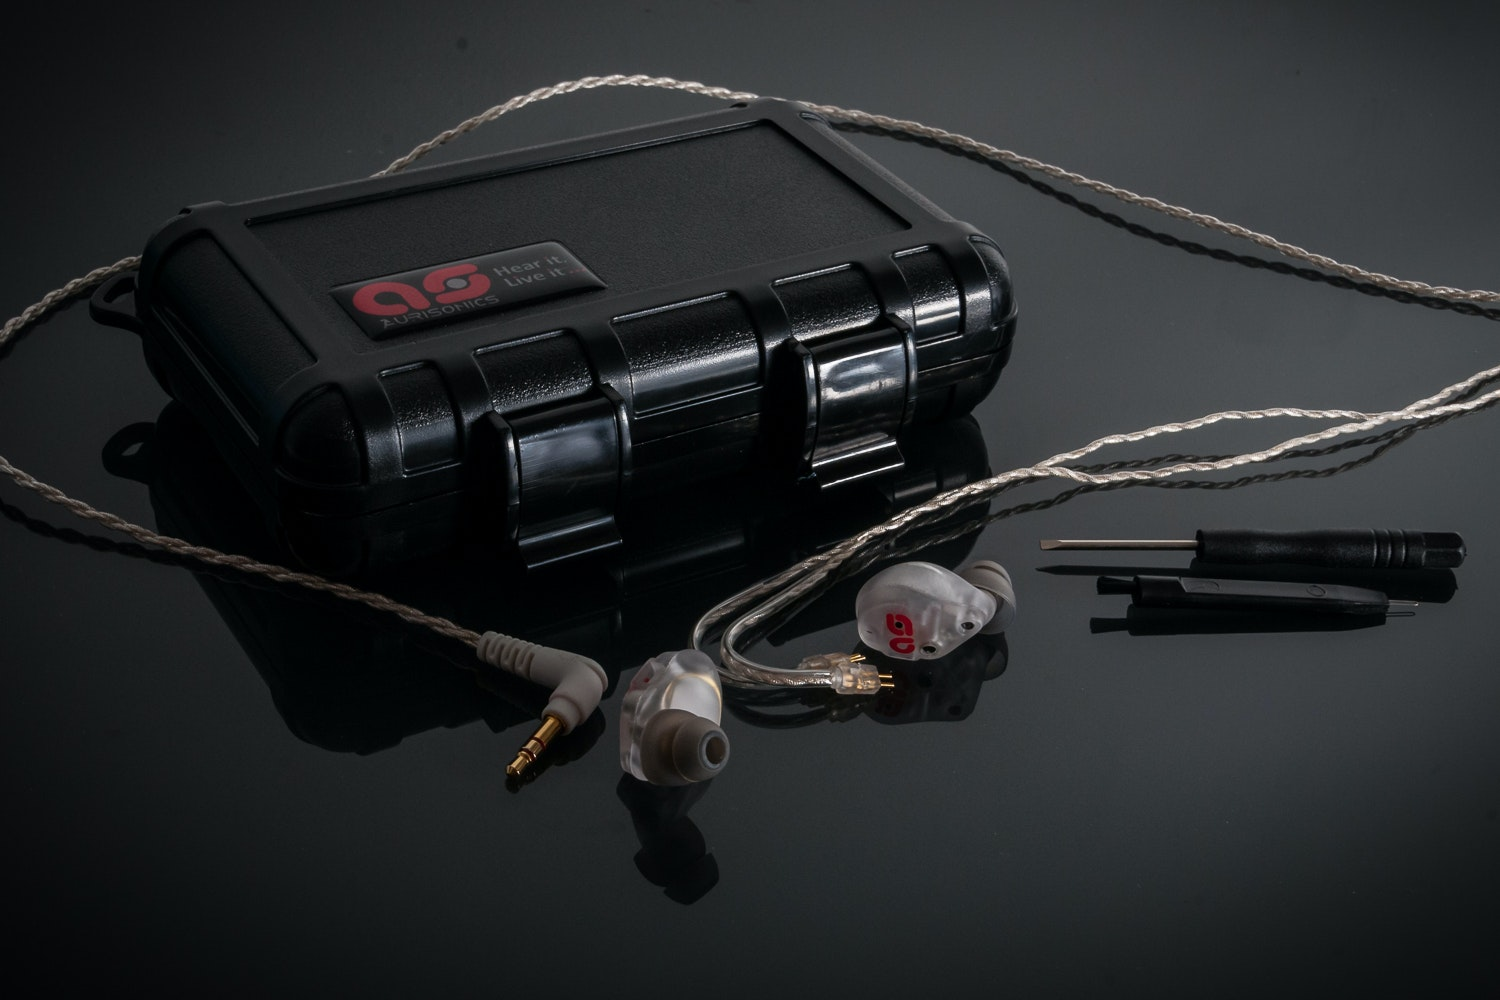 Aurisonics ASG-2.5 14.2mm Dynamic Hybrid IEM